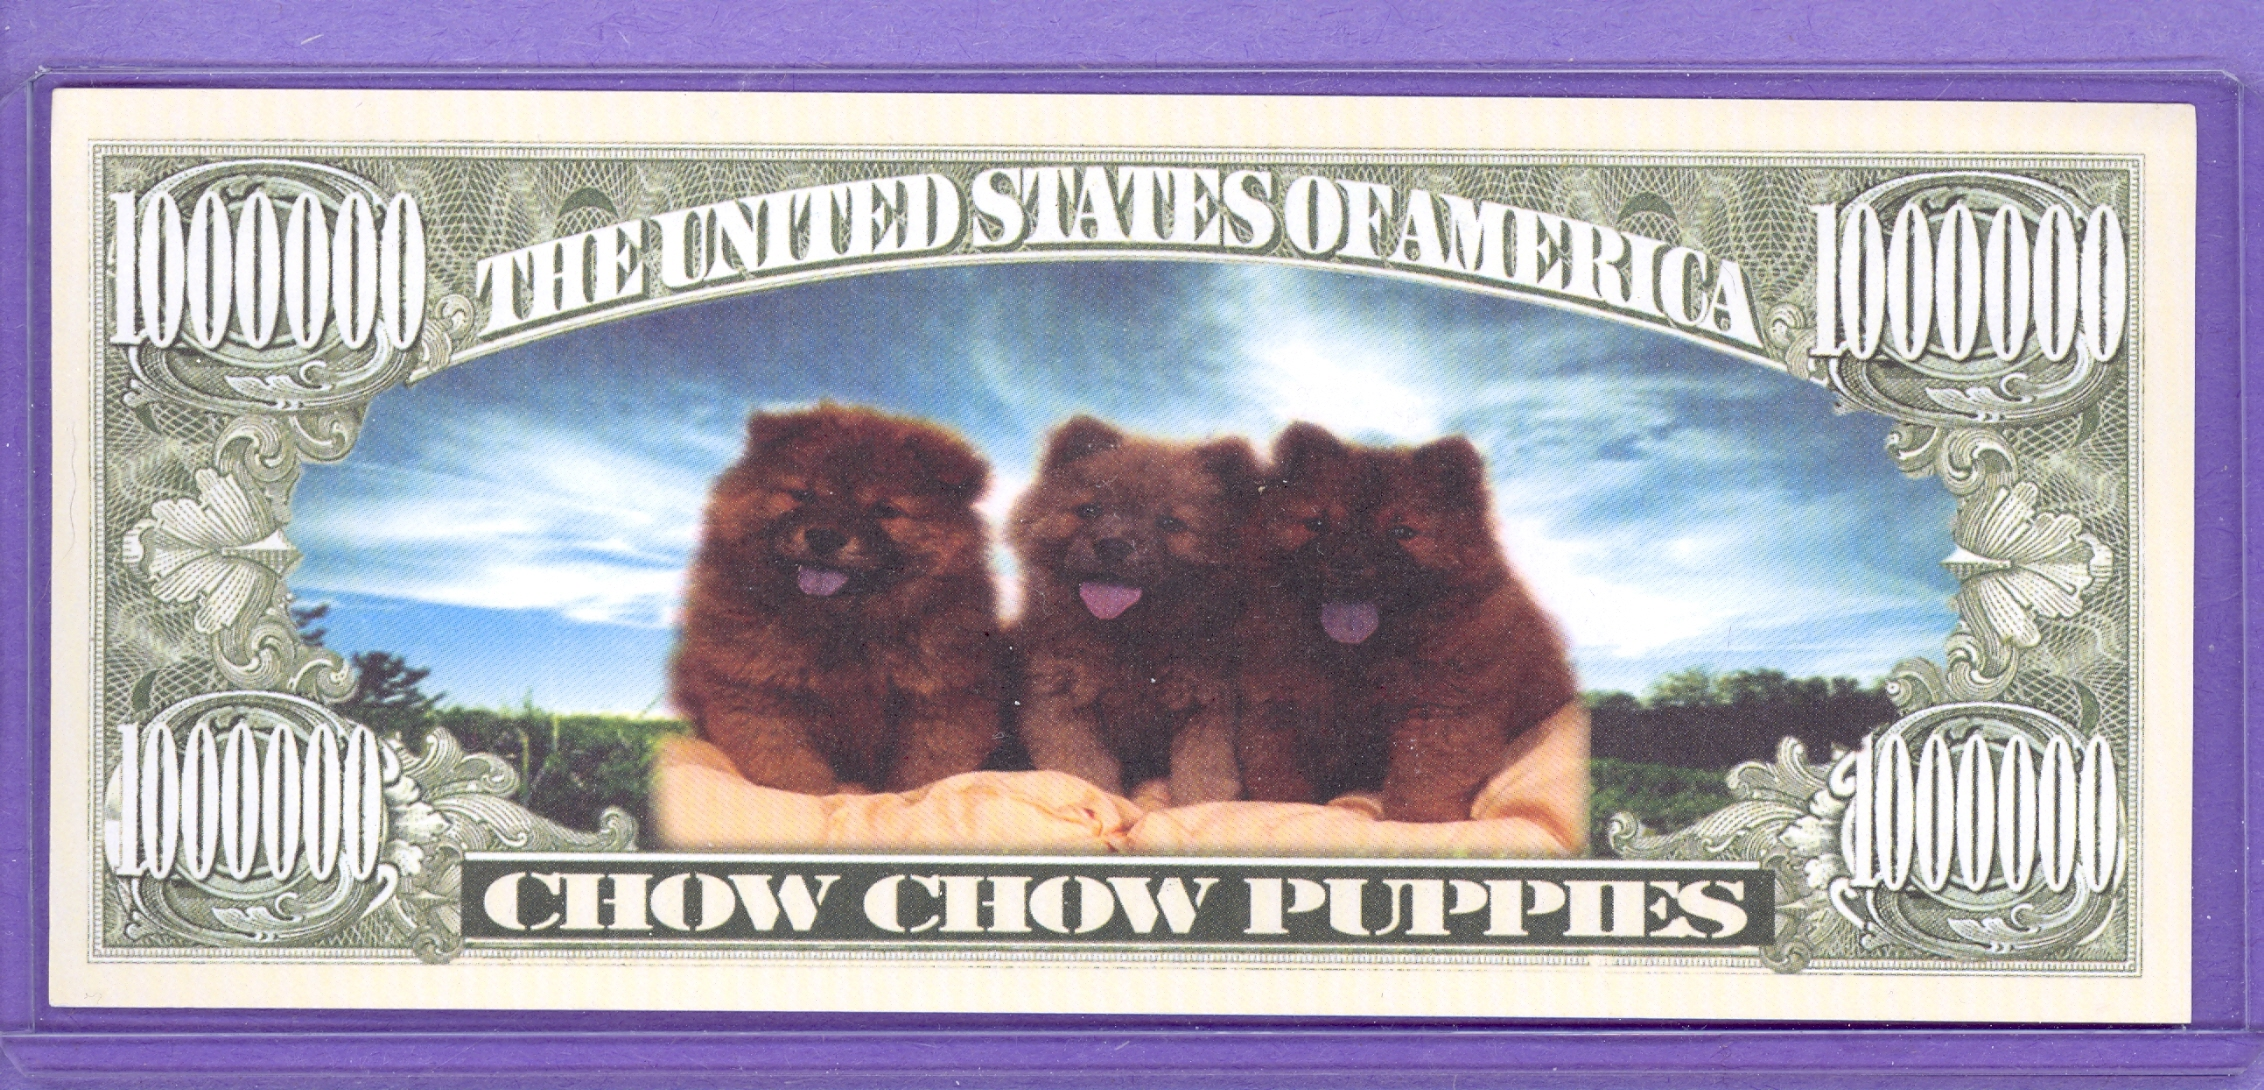 Chow Chow Puppies $1,000,000 Fantasy Note